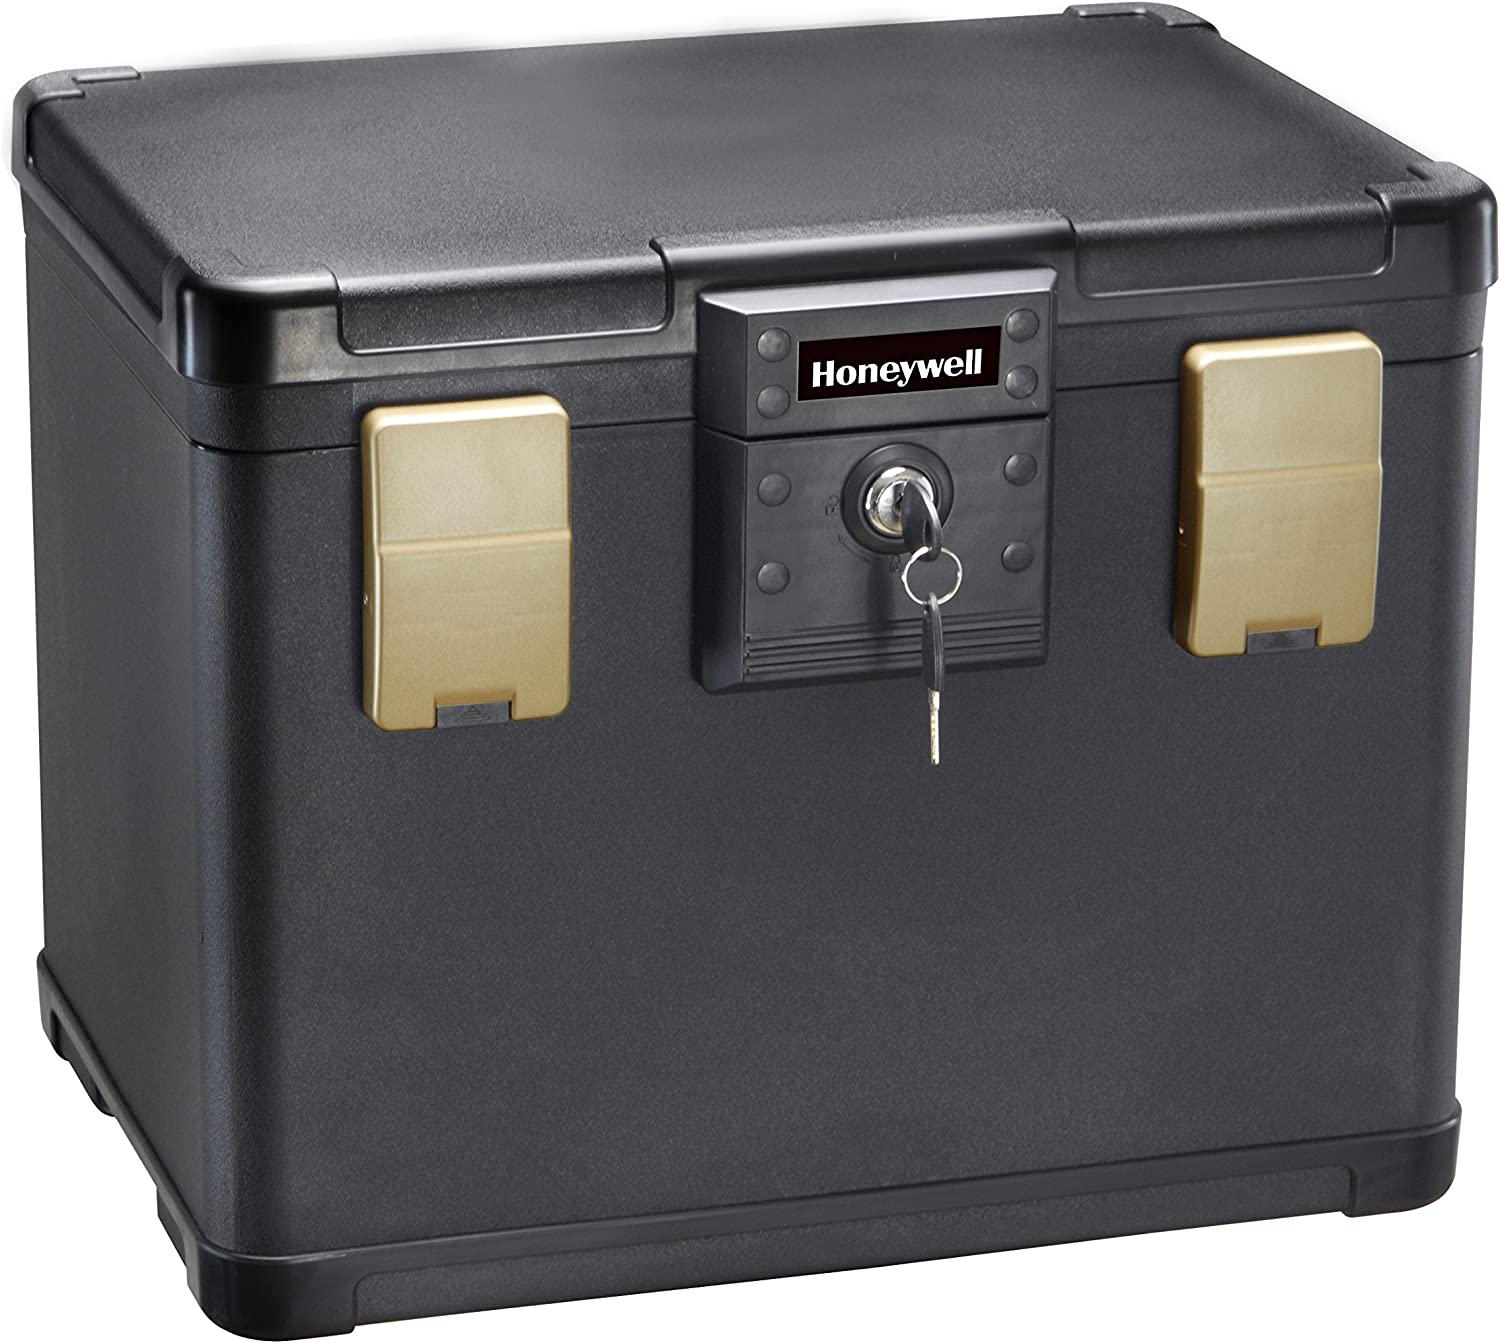 Honeywell Safes & Door Locks - 30 Minute Fire Safe Waterproof Filing Safe Box Chest (fits Letter and A4 Files), Medium, 1106: Home Improvement